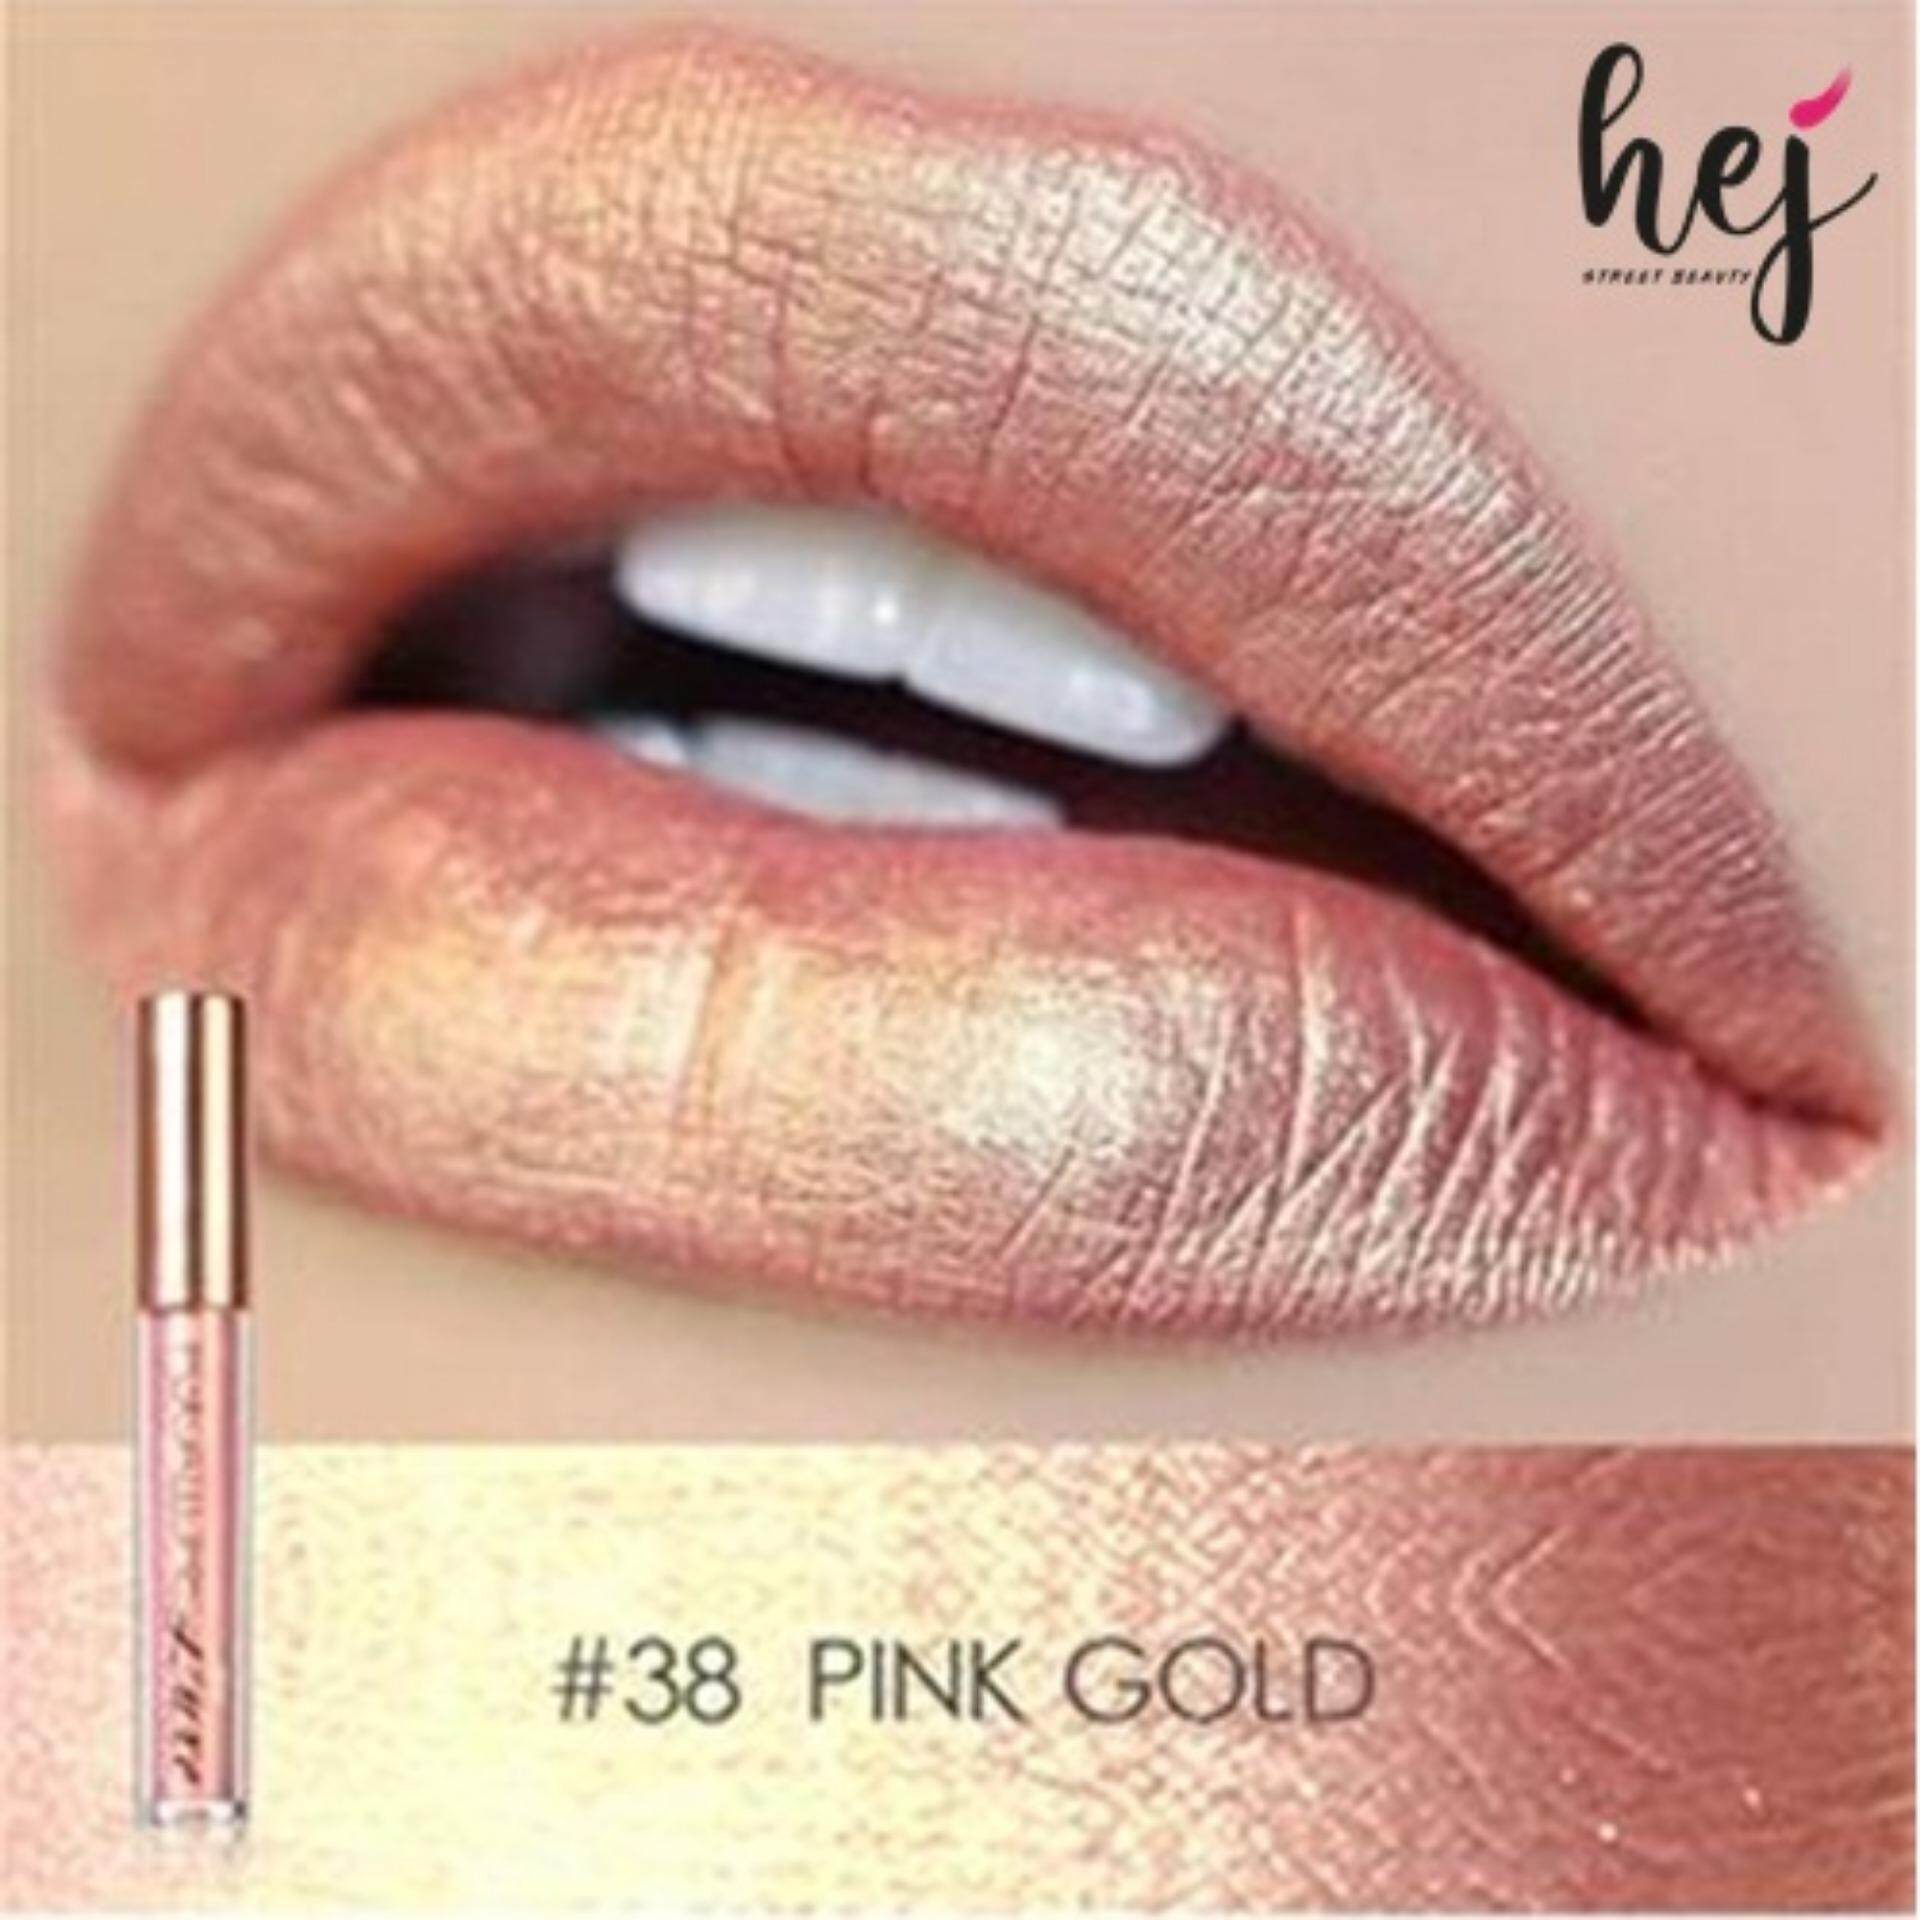 Focallure Metallic Waterproof Lipstick #38